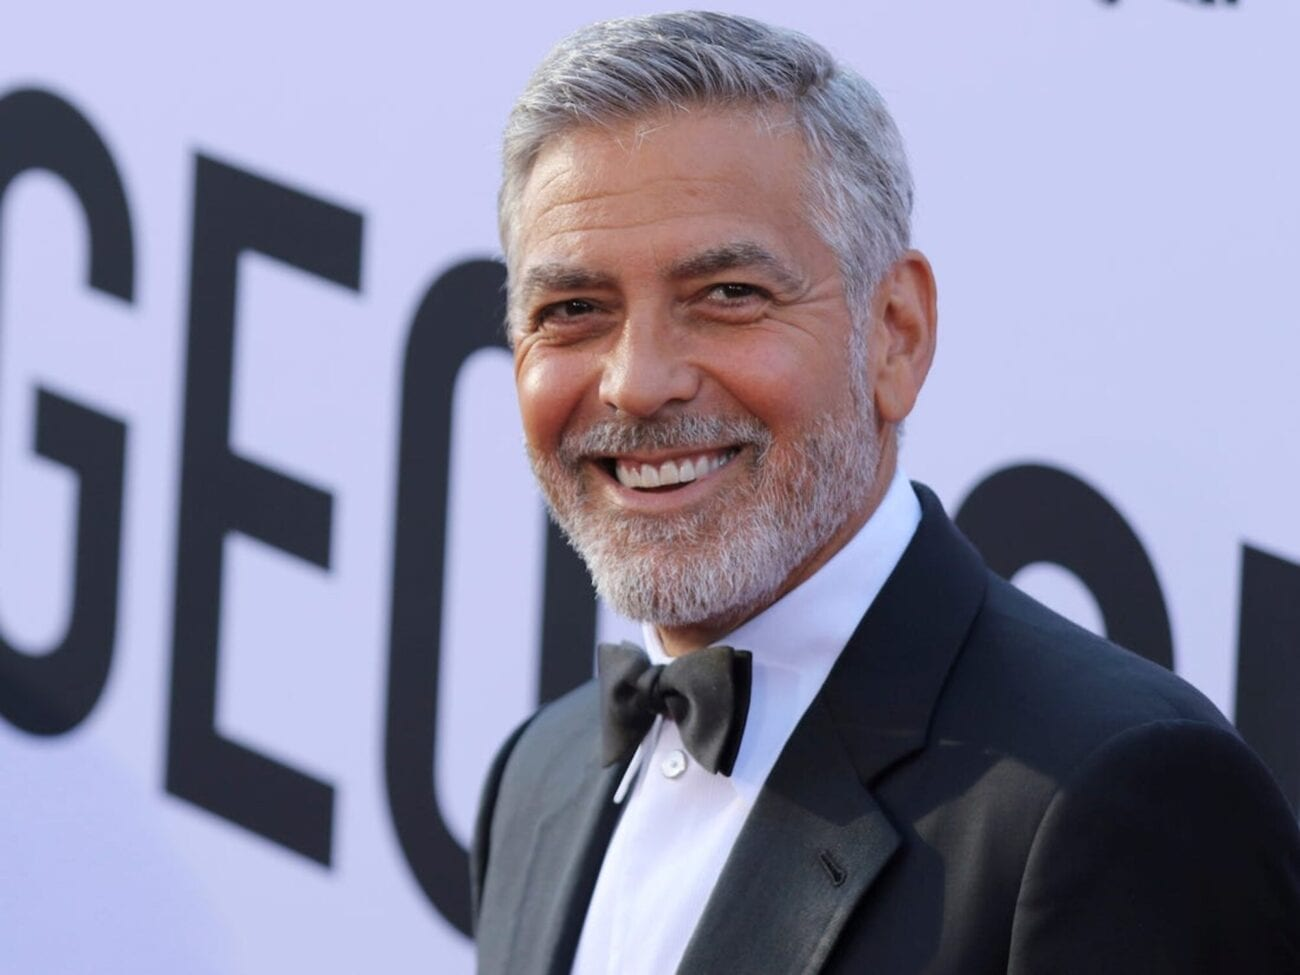 George Clooney has been charming the world with his acting career for forty years. How did he achieve his massive net worth?